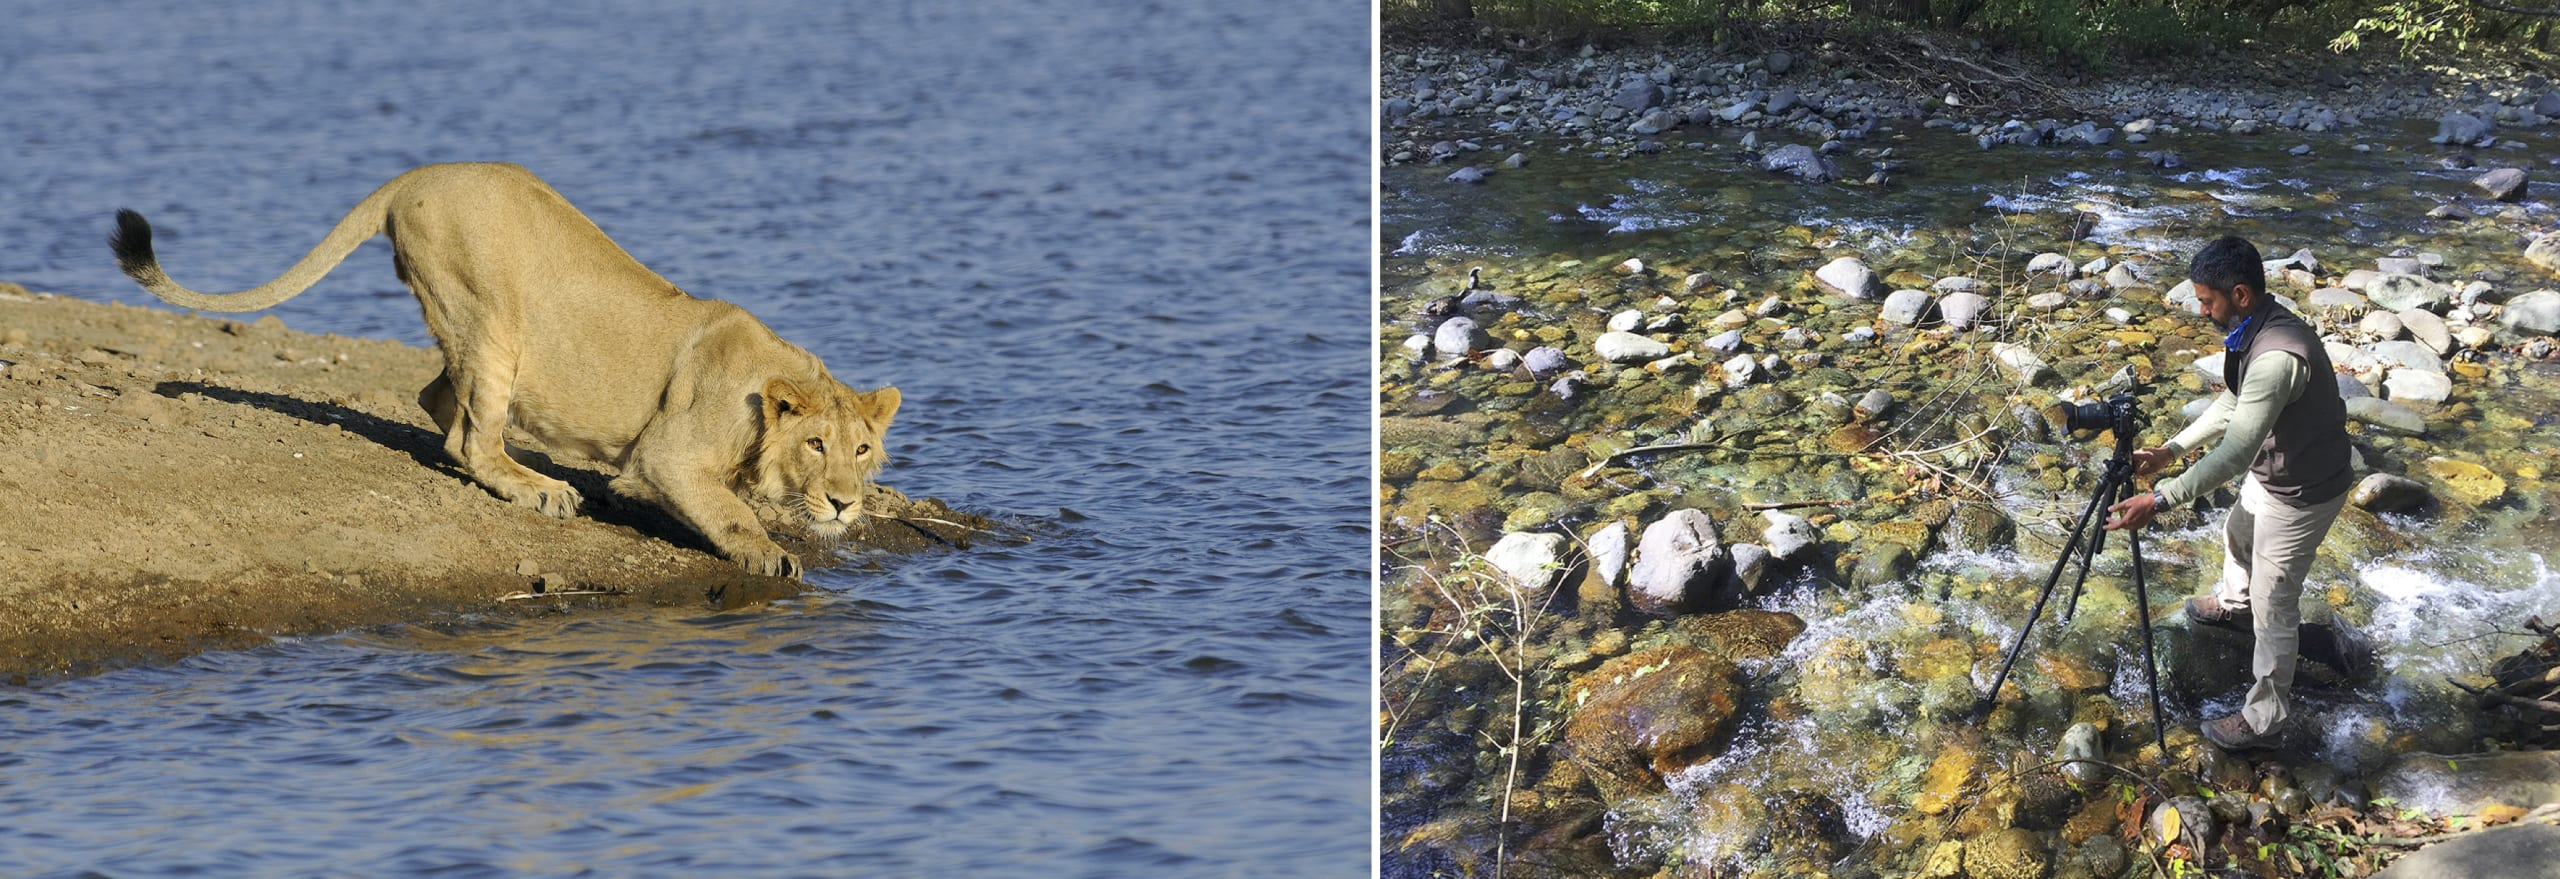 Anish Andheria has been an avid wildlife photographer for most of his career. (Left) A photograph of a sub-adult lion he took in Gir National Park, Gujarat. (Right) Photographing a river in Dachigam, Jammu and Kashmir. Photos courtesy: Anish Andheria (left), Bittu Sahgal (right)